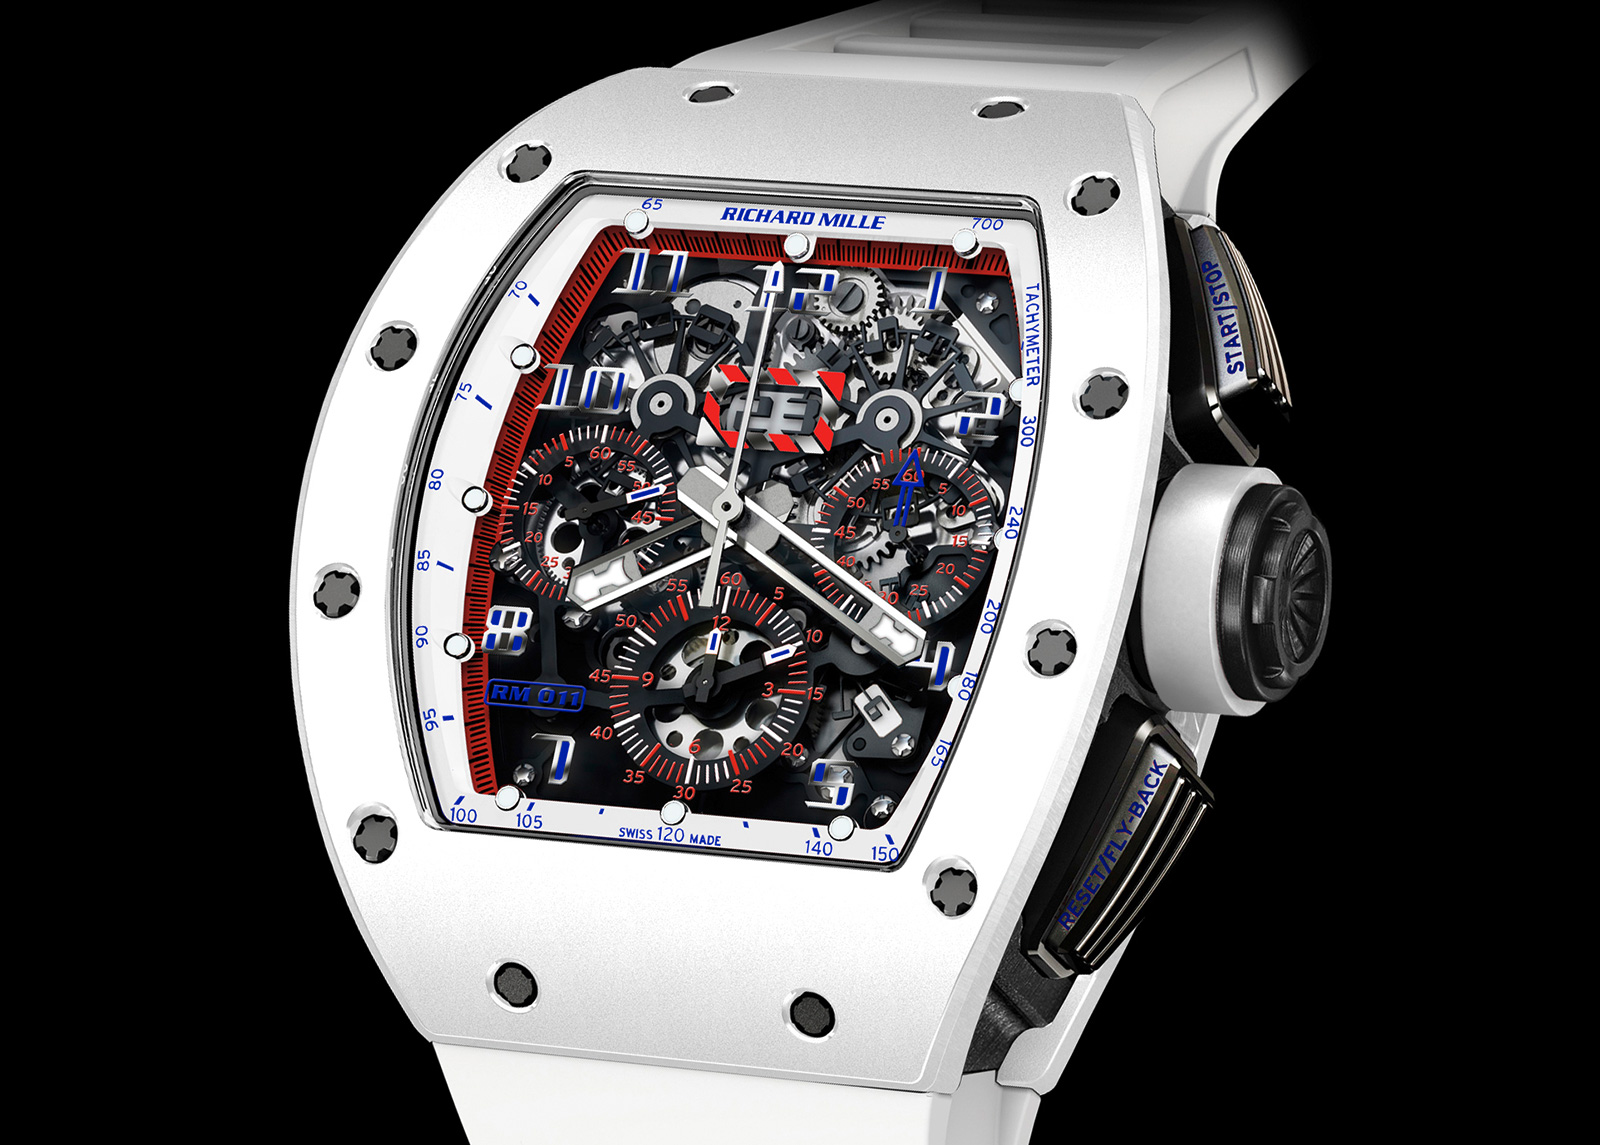 Richard-Mille-RM-011-Ceramic-NTPT-Singapore-Edition-2